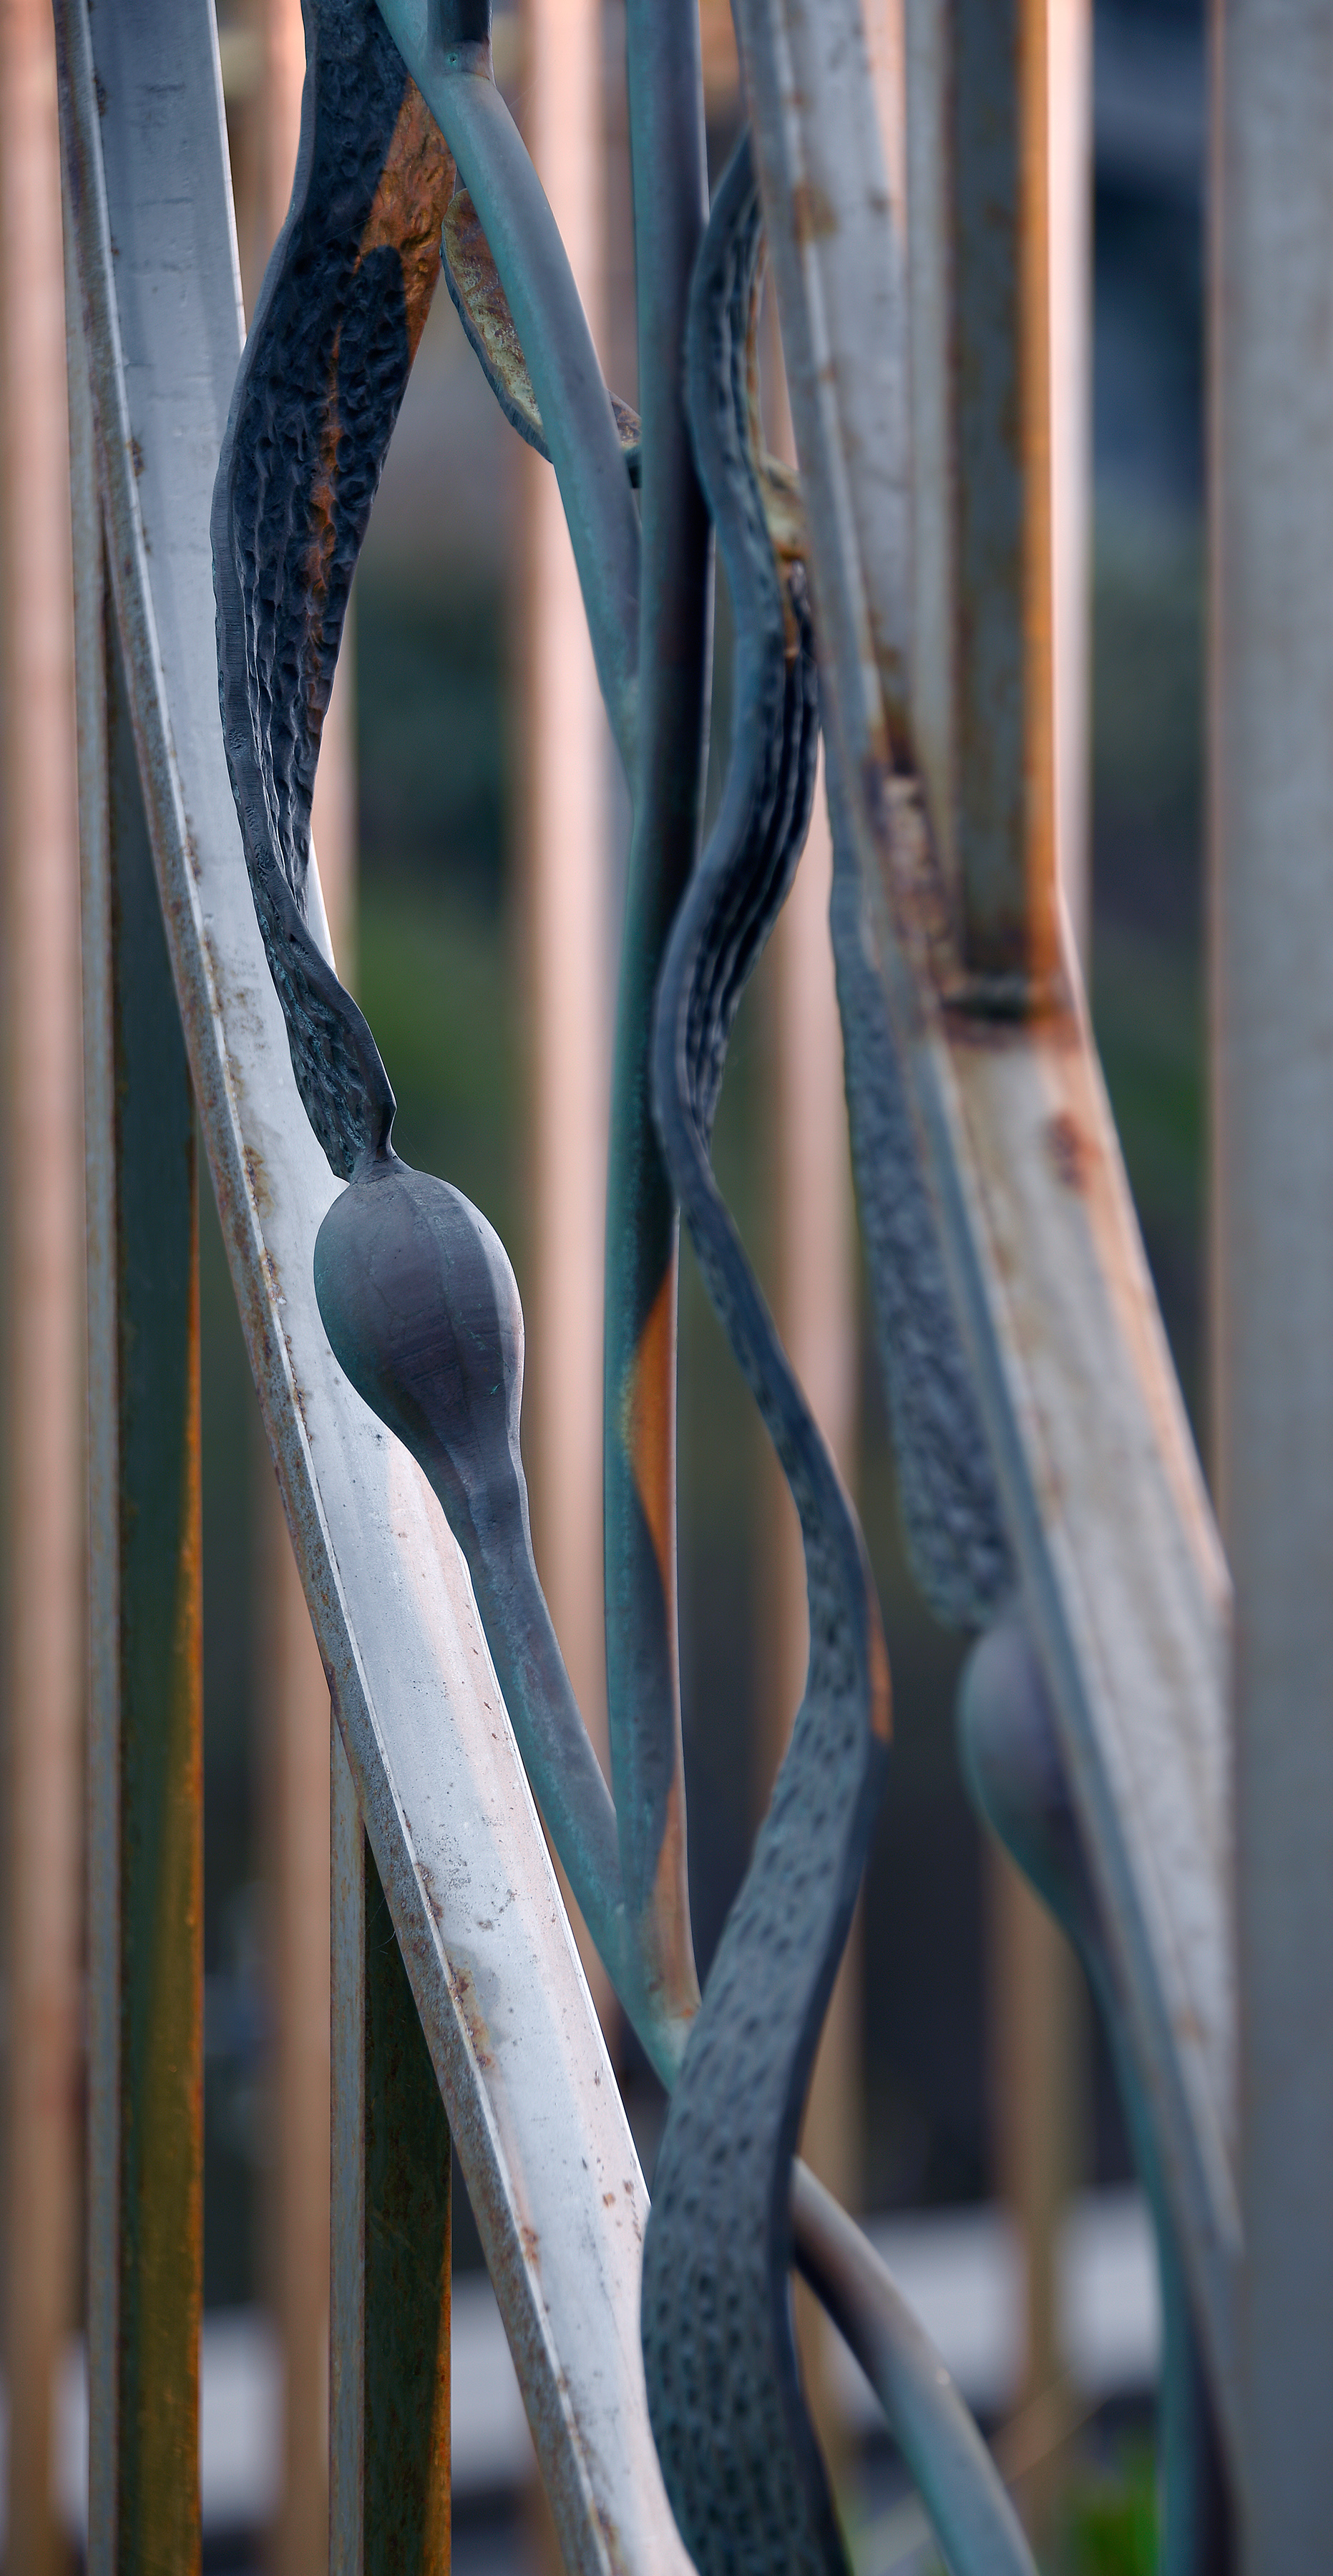 Stainless Steel Railing with Bronze Kelp